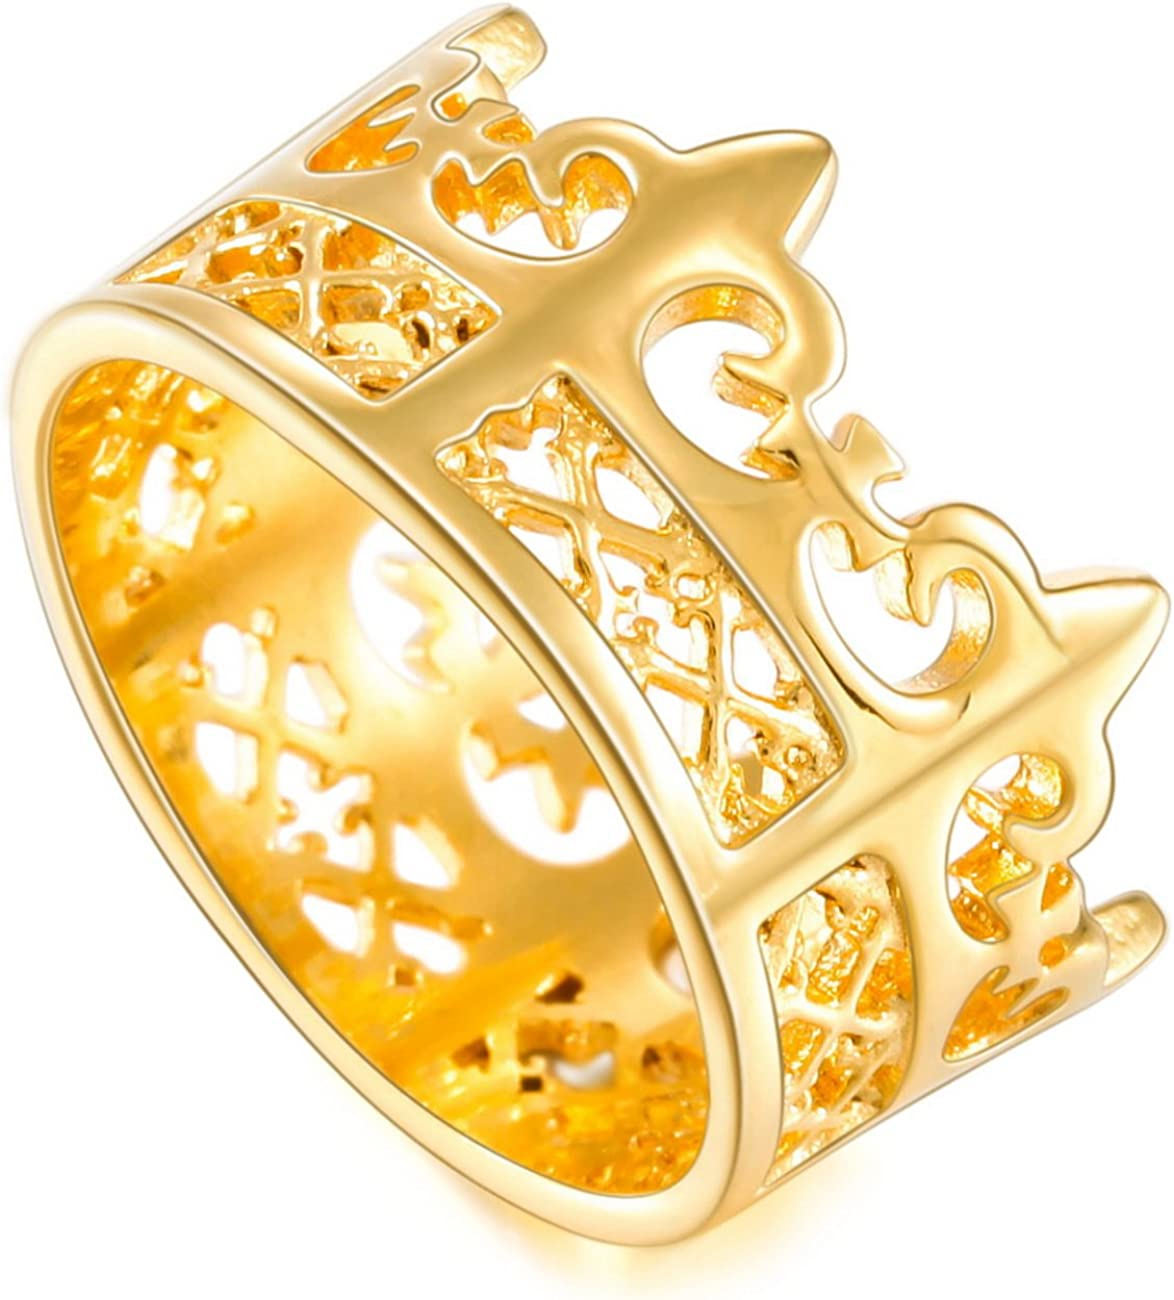 MOWOM Gold Tone Stainless Steel Band Ring Royal King Crown